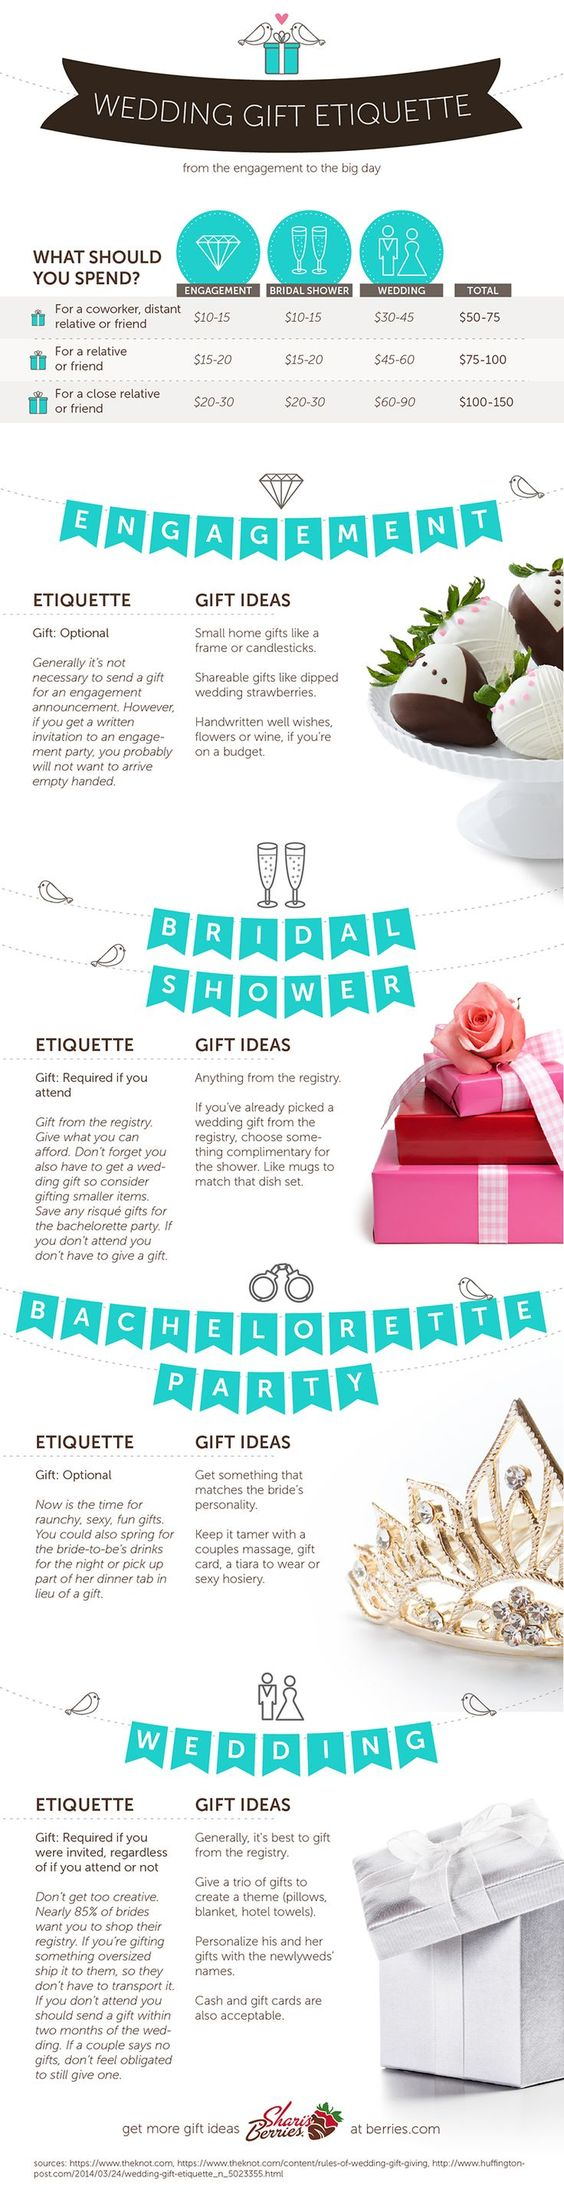 Wedding Gift Guide Suggestions : gift bridal hosting a bridal shower wedding gifts for bridal party ...